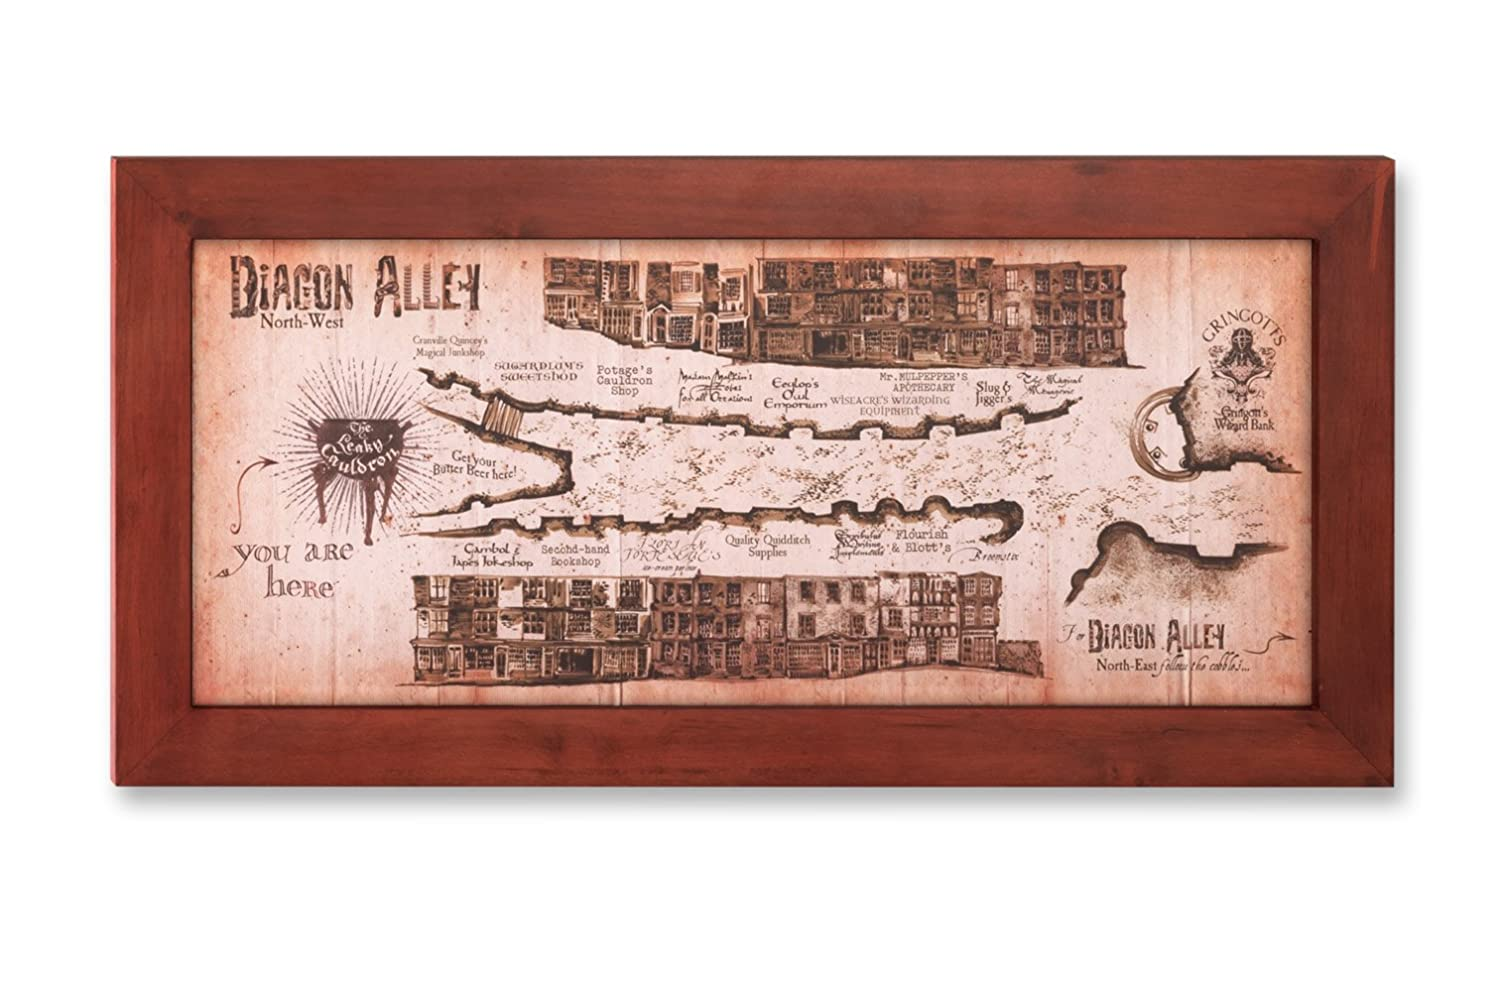 Buy Harry Potter Diagon Alley Map Online at Low Prices in ... on iowa county map, j.k. rowling map, ministry of magic map, wizard map, harry potter alley map, charing cross galloway street map, oklahoma tornado alley map, chamber of secrets map, hogwarts map, home map,